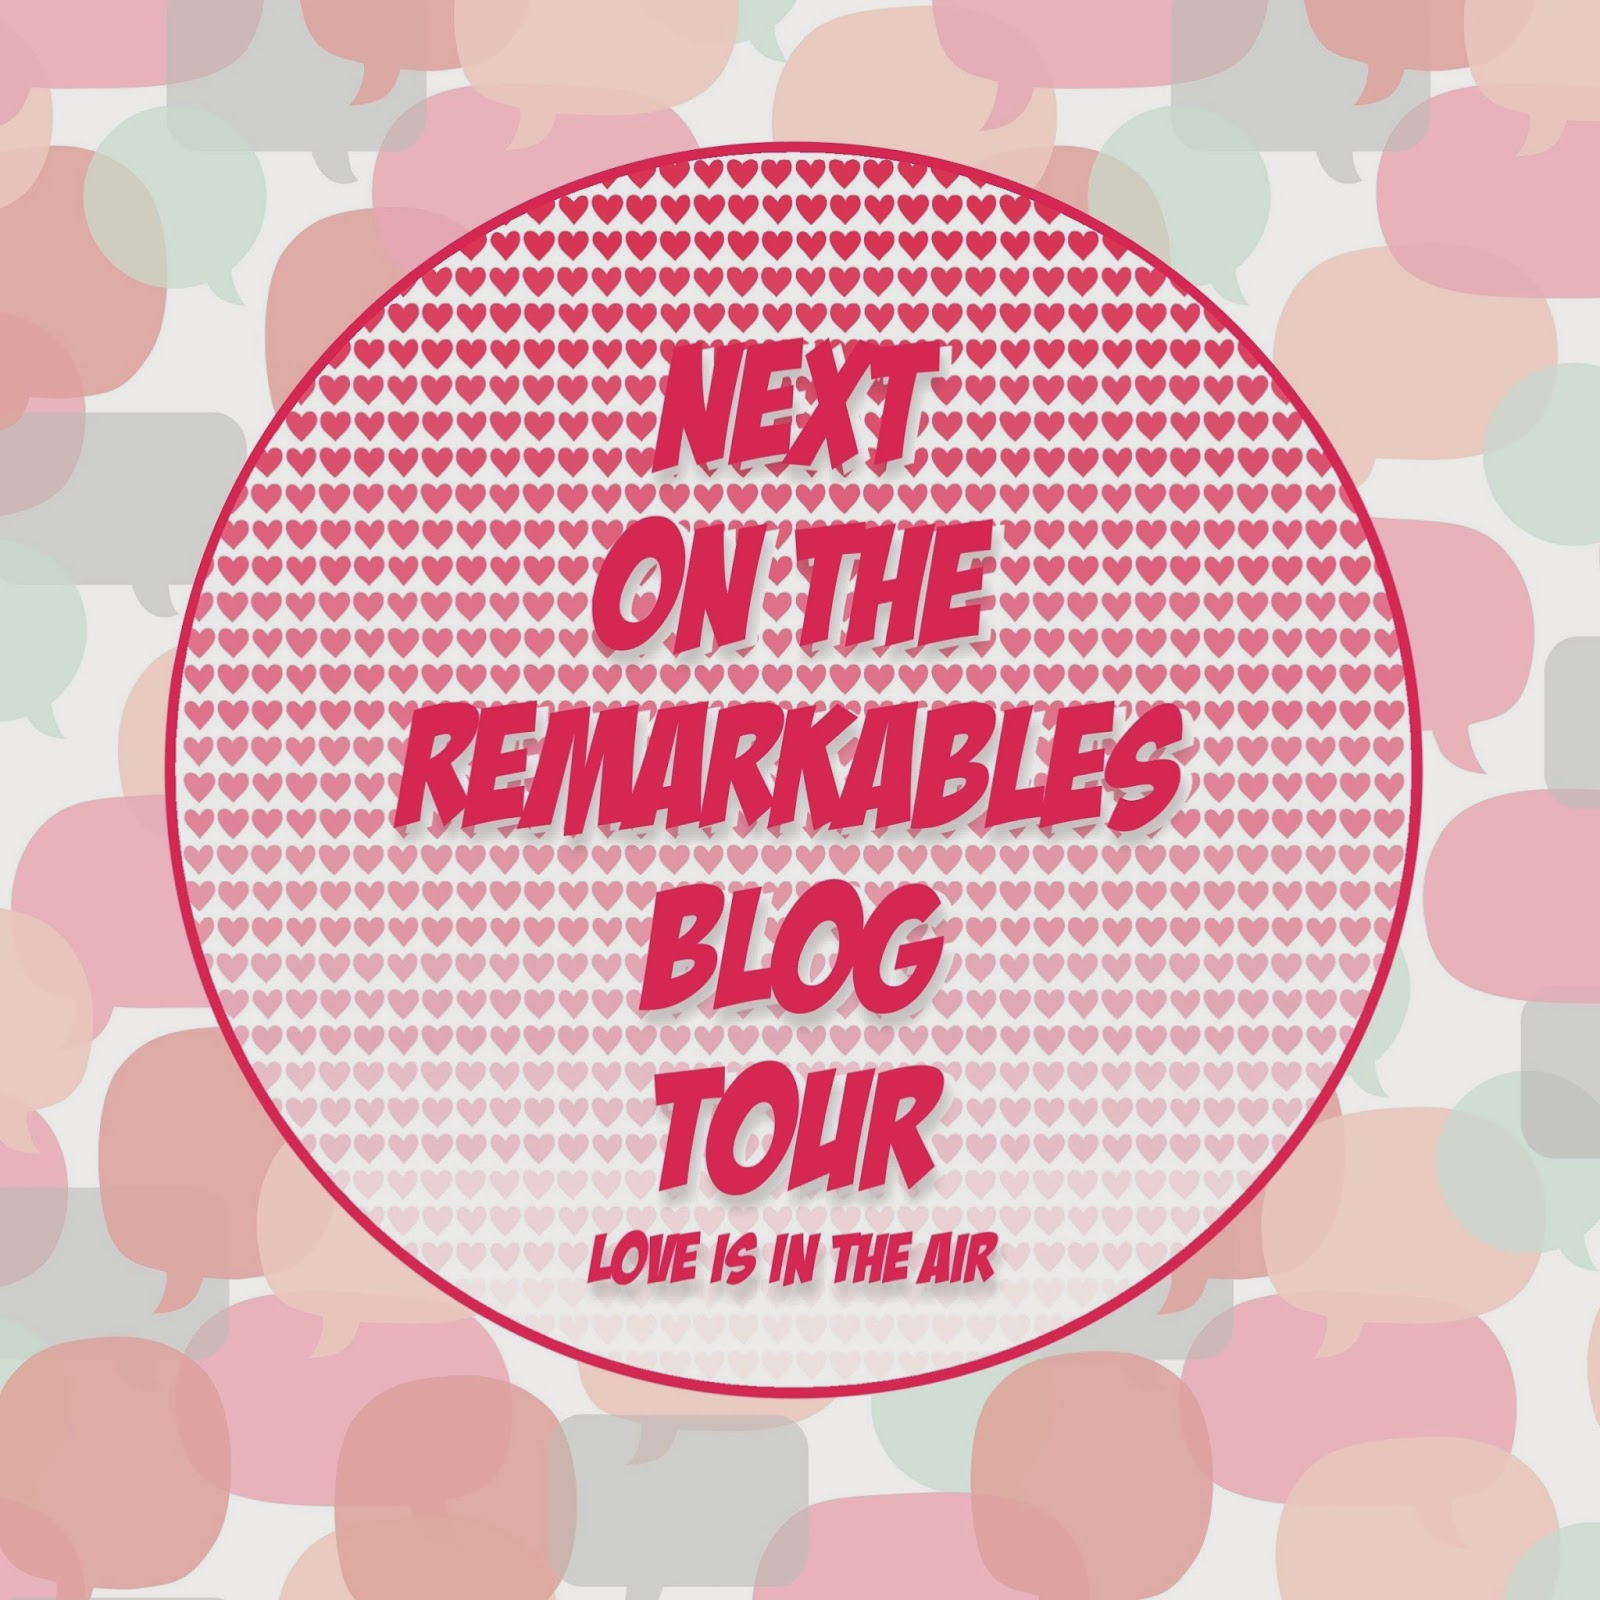 http://www.absolutekreations.com/2015/01/08/remarkable-stampers-blog-tour-love-is-in-the-air